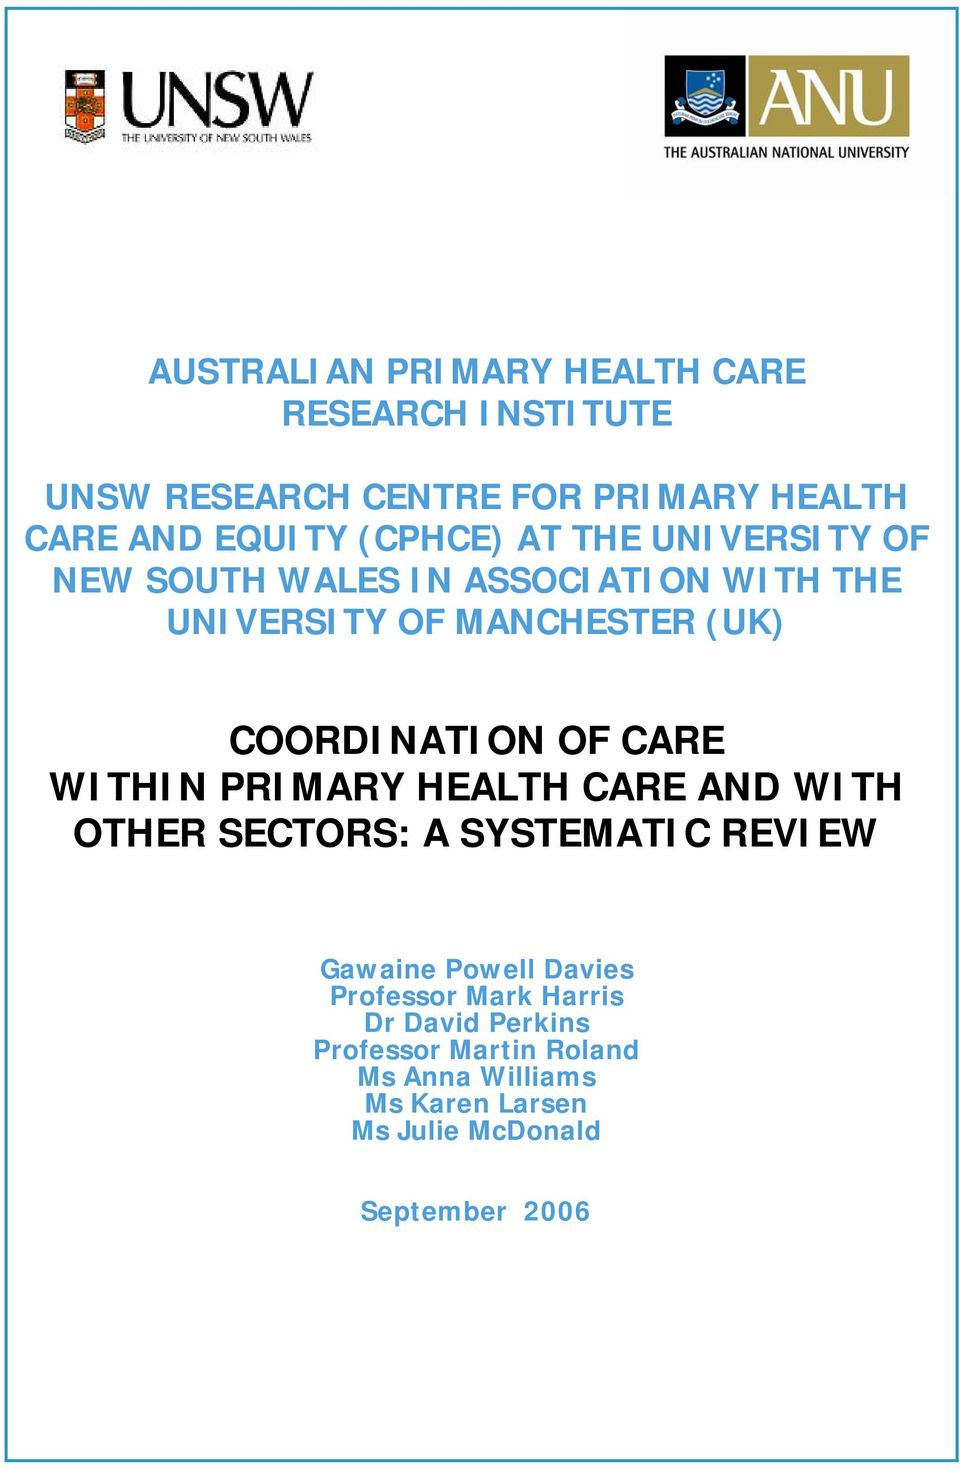 OF CARE WITHIN PRIMARY HEALTH CARE AND WITH OTHER SECTORS: A SYSTEMATIC REVIEW Gawaine Powell Davies Professor